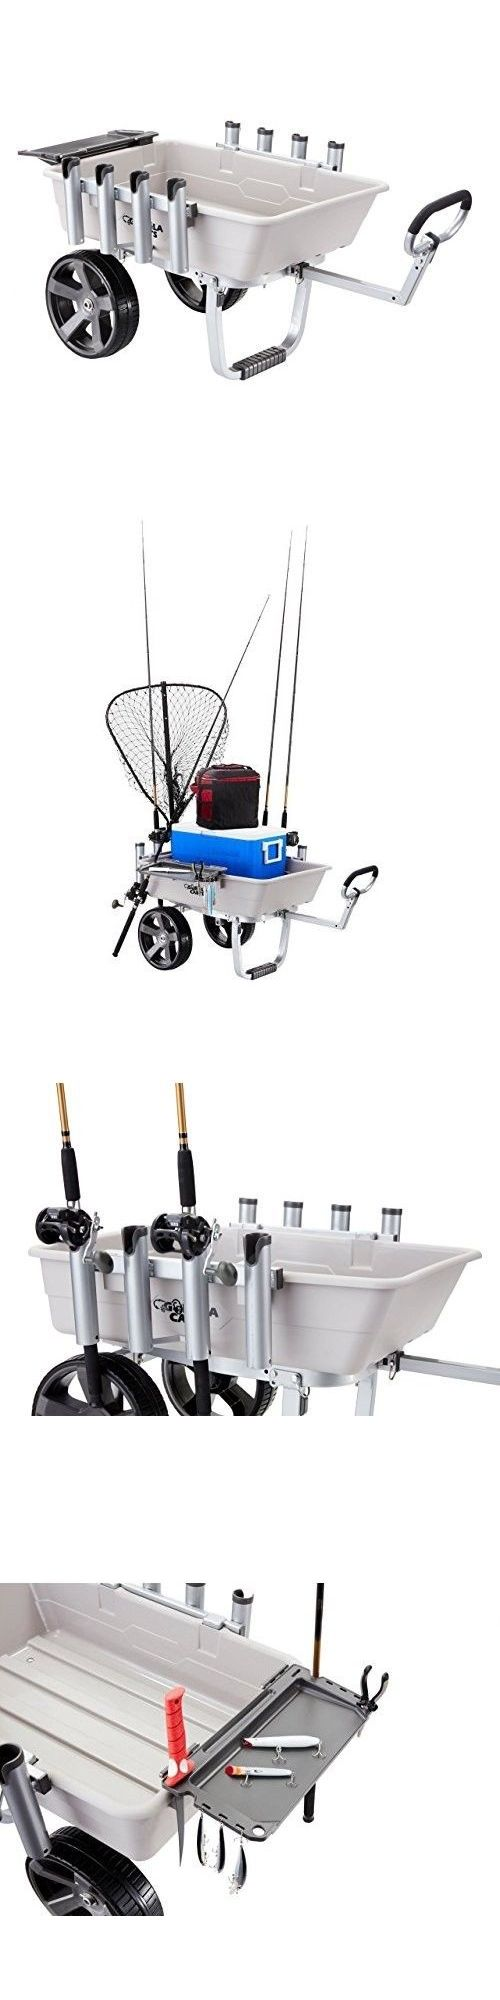 Fishing Carts and Wagons 179993: Beach Fishing Cart Wheels Equipment Rolling Terrain Tire Outdoor Tub Rod Ocean -> BUY IT NOW ONLY: $203.83 on eBay!